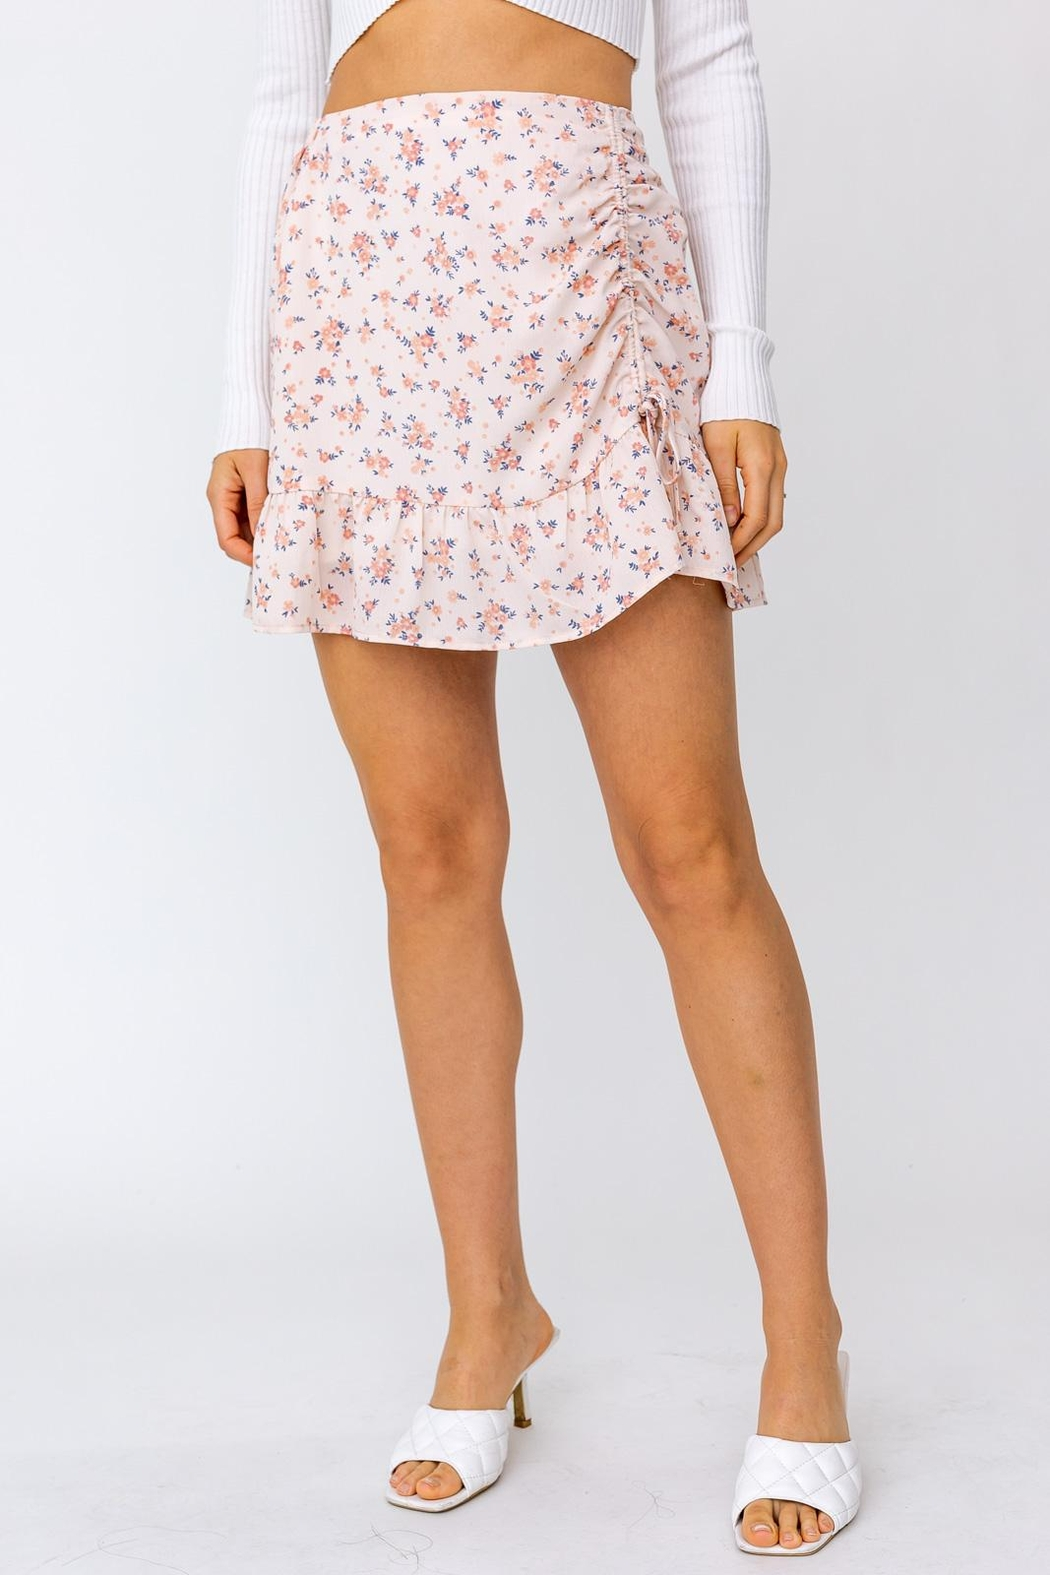 Le Lis Ruched Floral Mini Skirt - Front Full Image